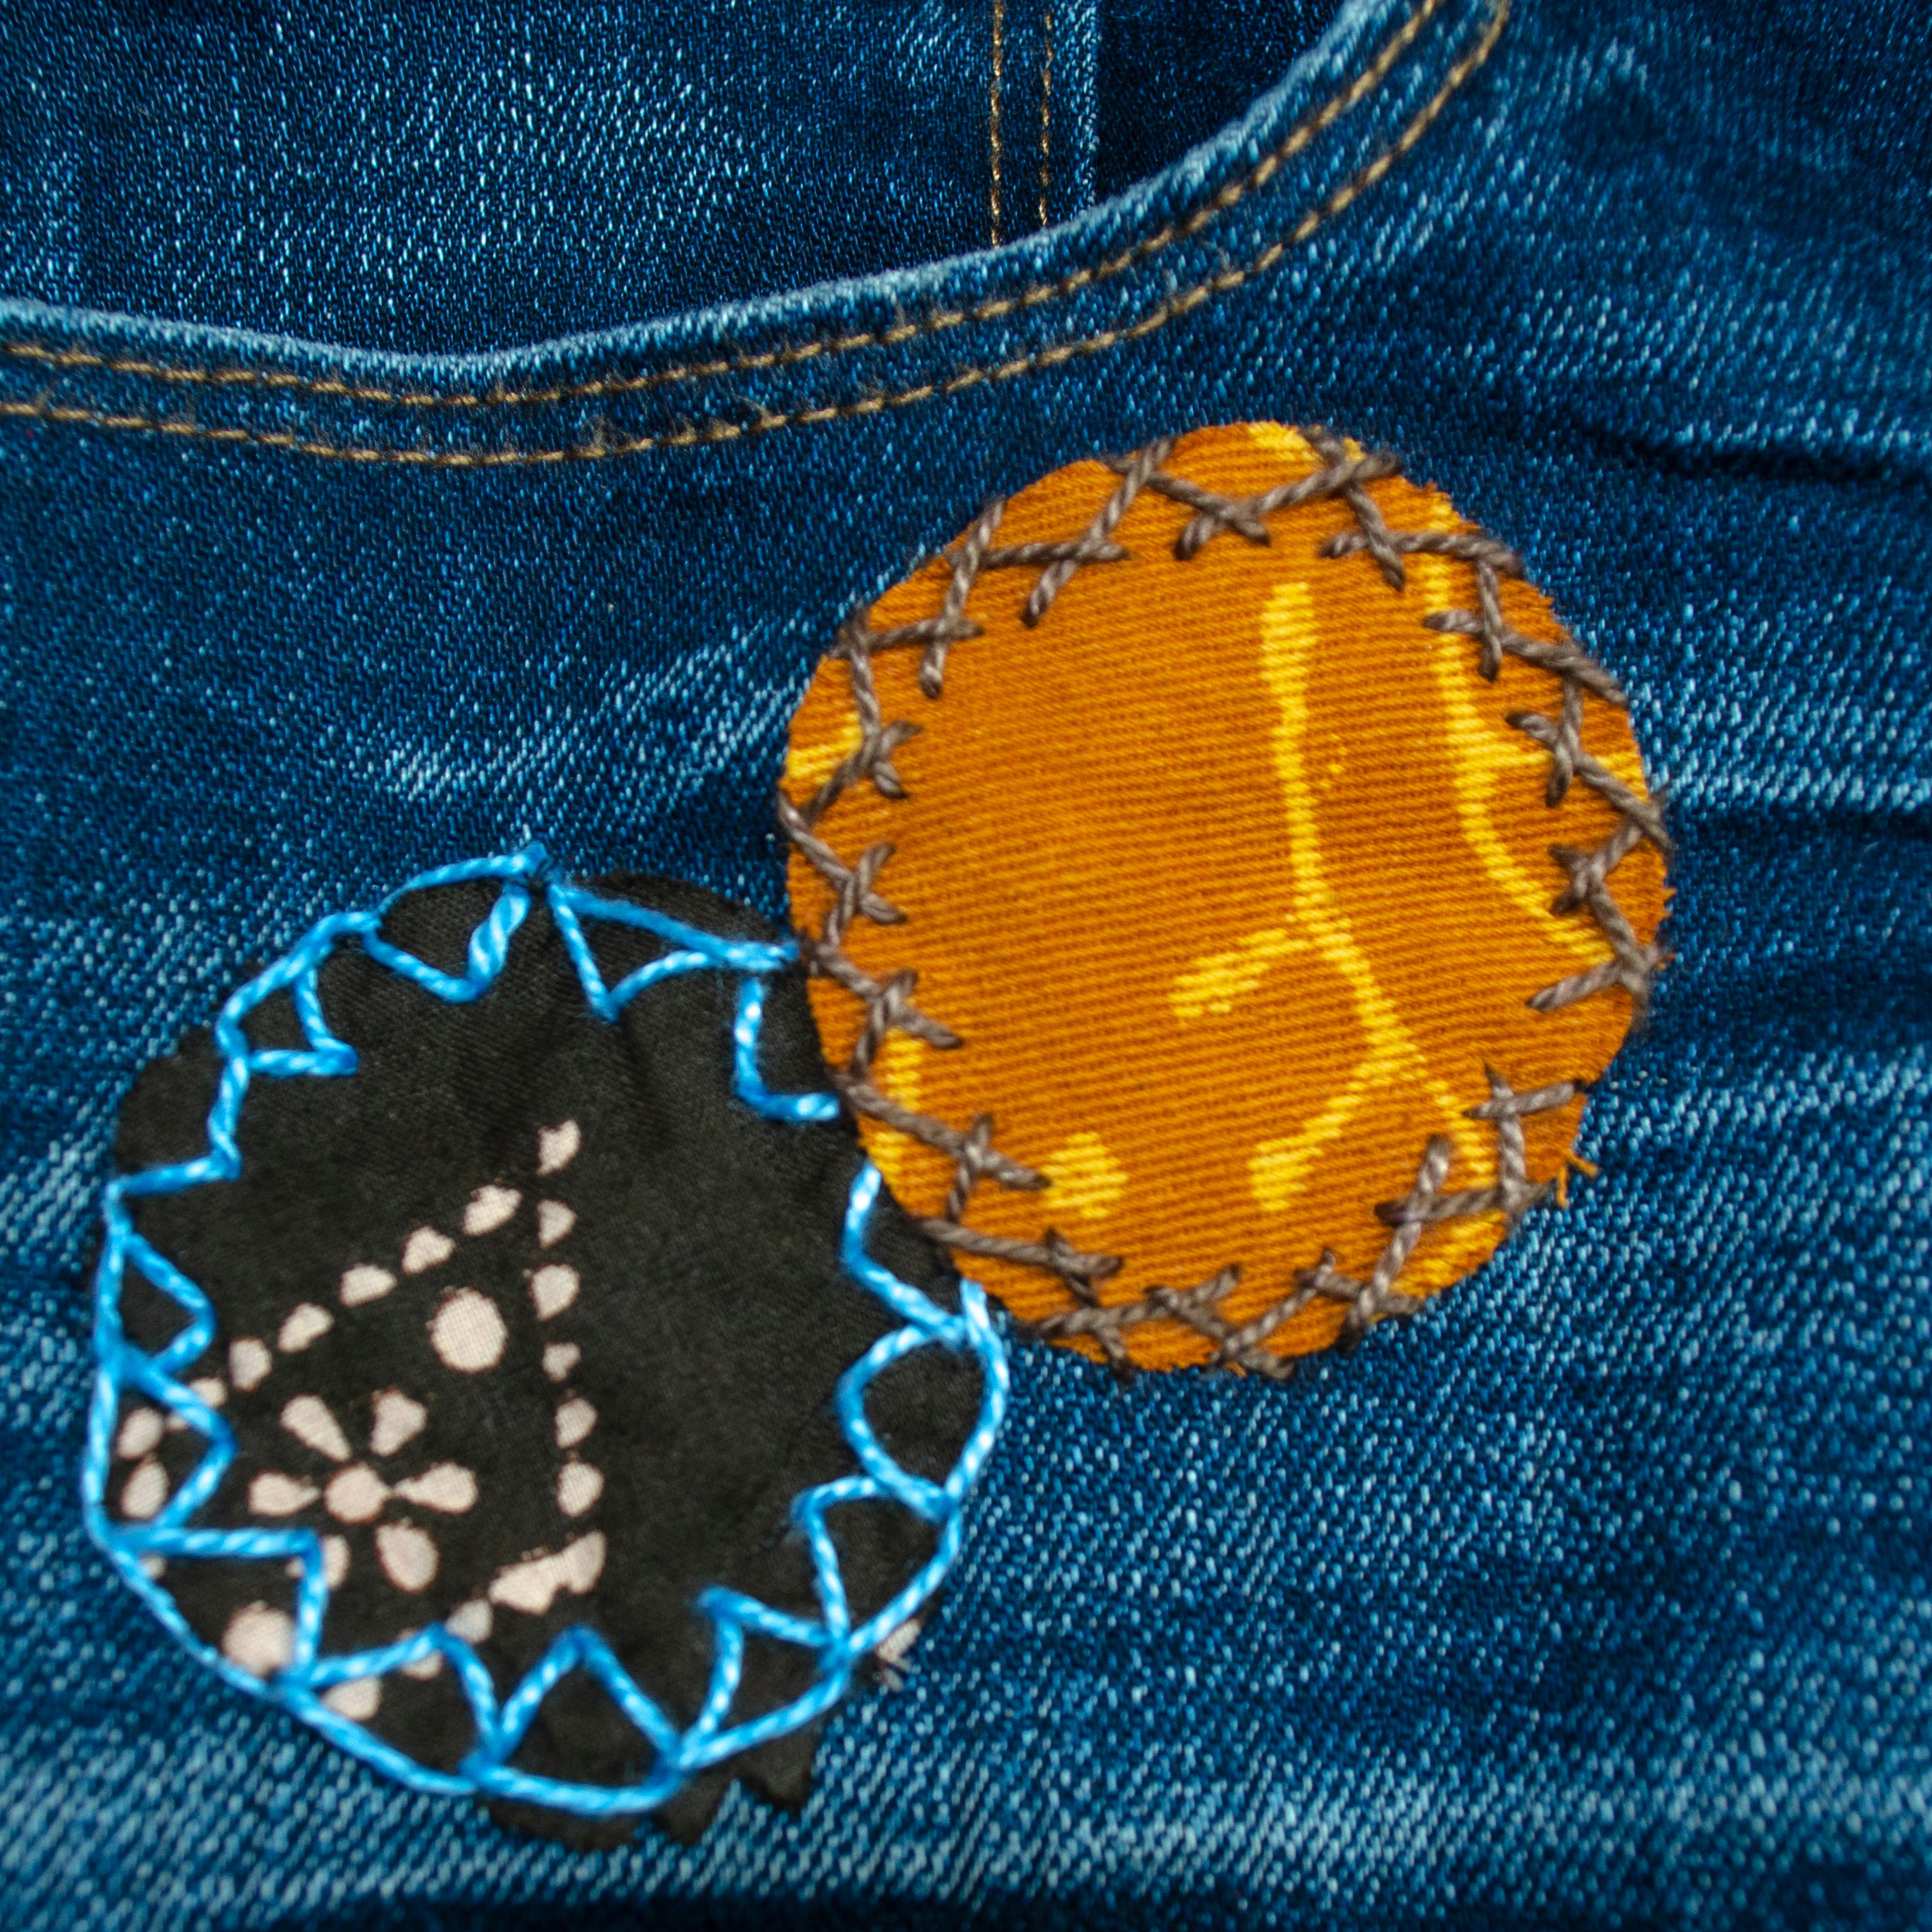 DMC Perle Cotton used to hand-stitch patches onto denim jeans. Decorative stitches highlight the visible mending.